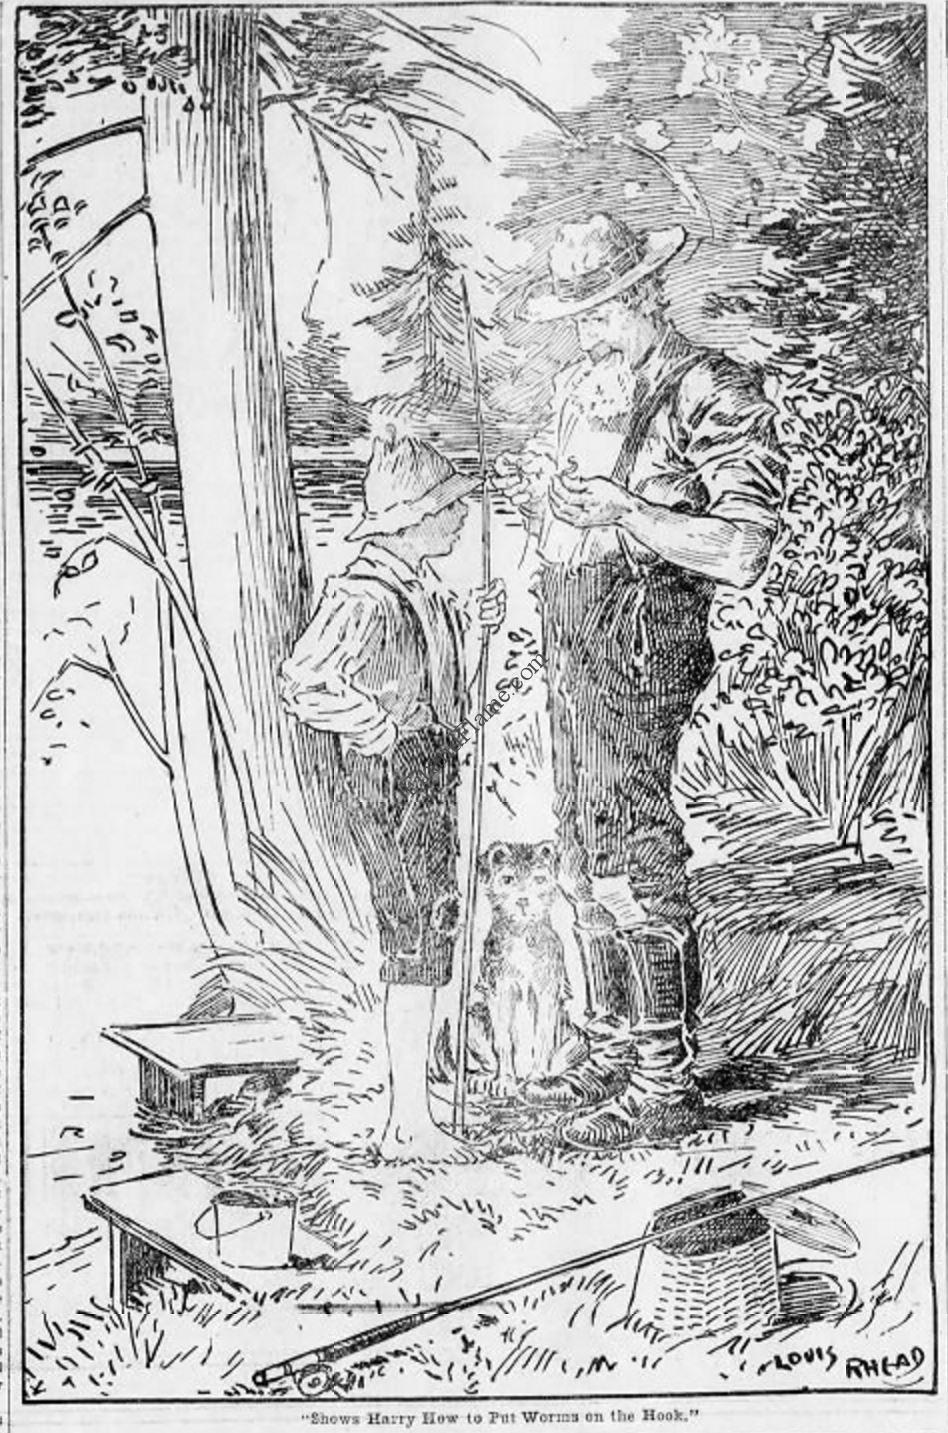 Louis Rhead Putting Worms on a Hook